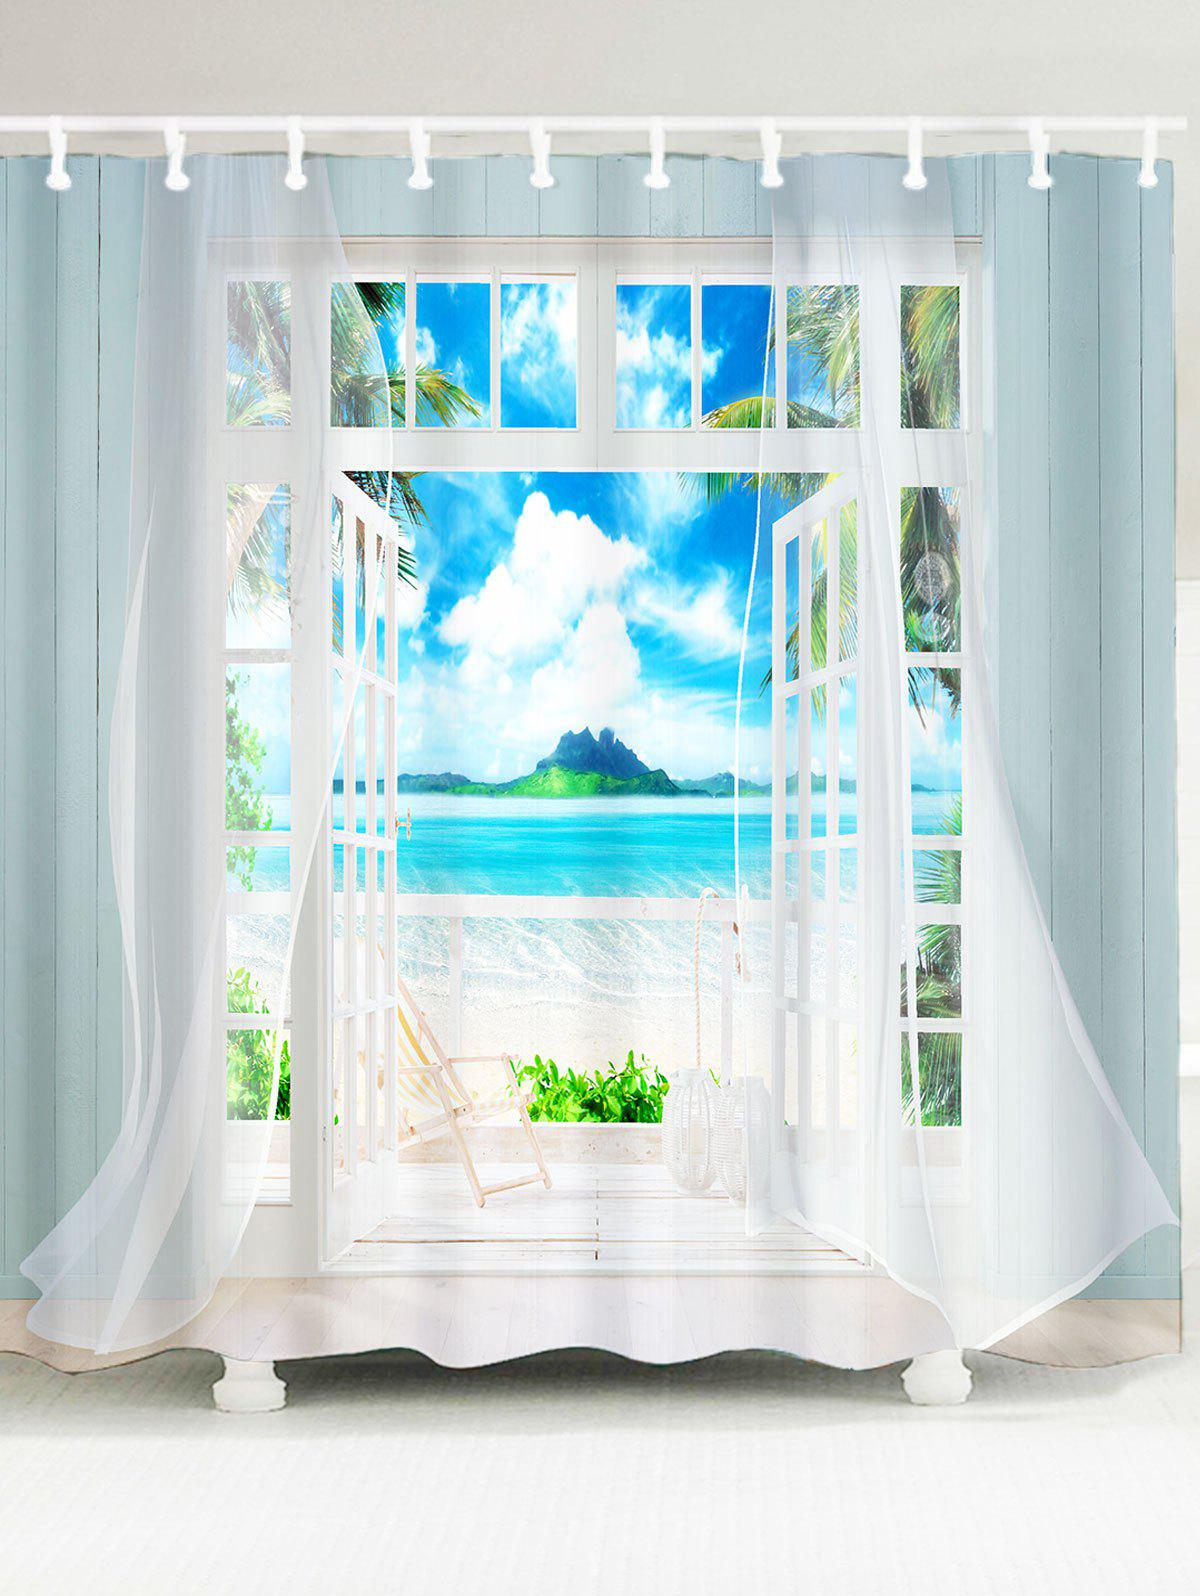 Waterproof 3D Window Frame Printed Shower Curtain waterproof functions blackboard printed shower curtain